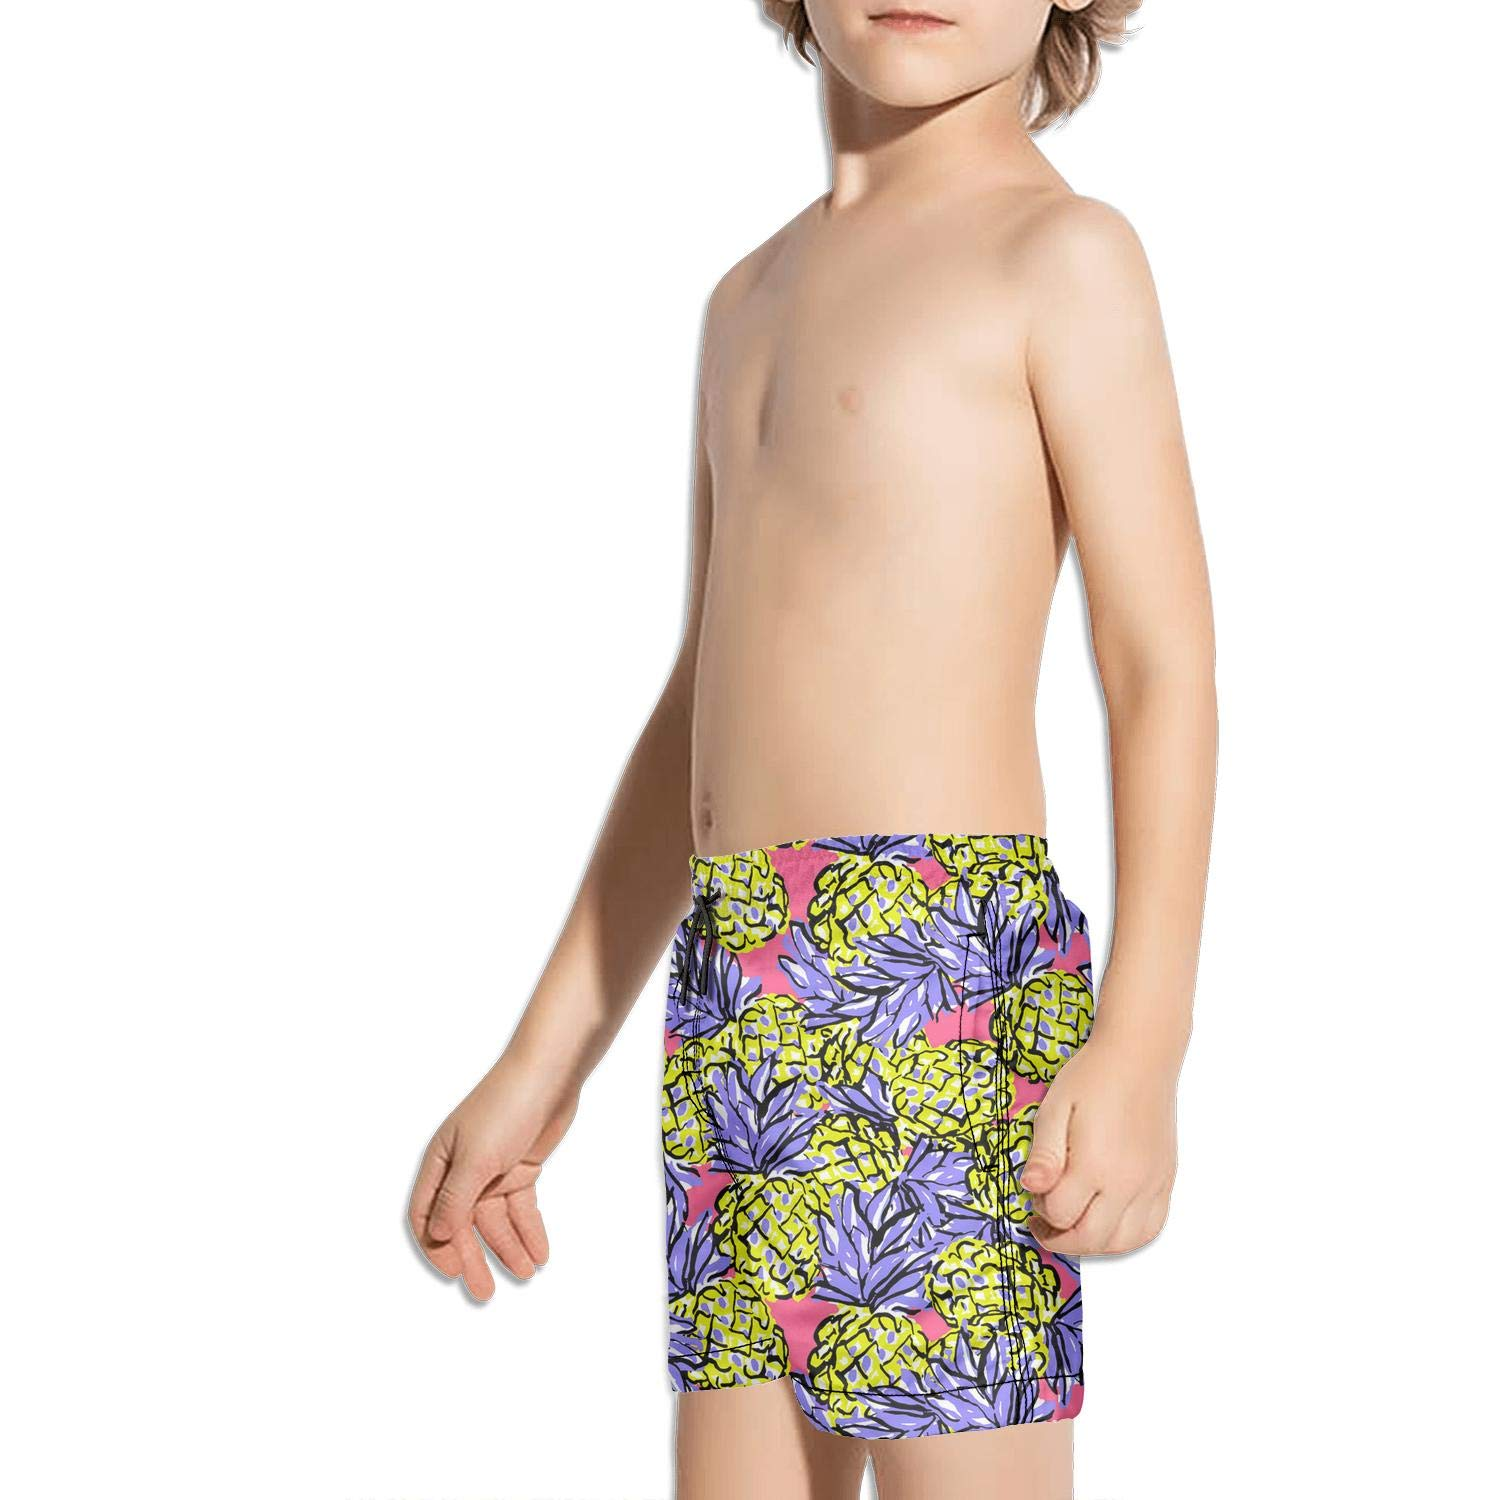 LKIMNJ Boys Board Shorts Colorful Pineapple Fruit Stipes Quick Dry Bathing Suits Beach Board Shorts